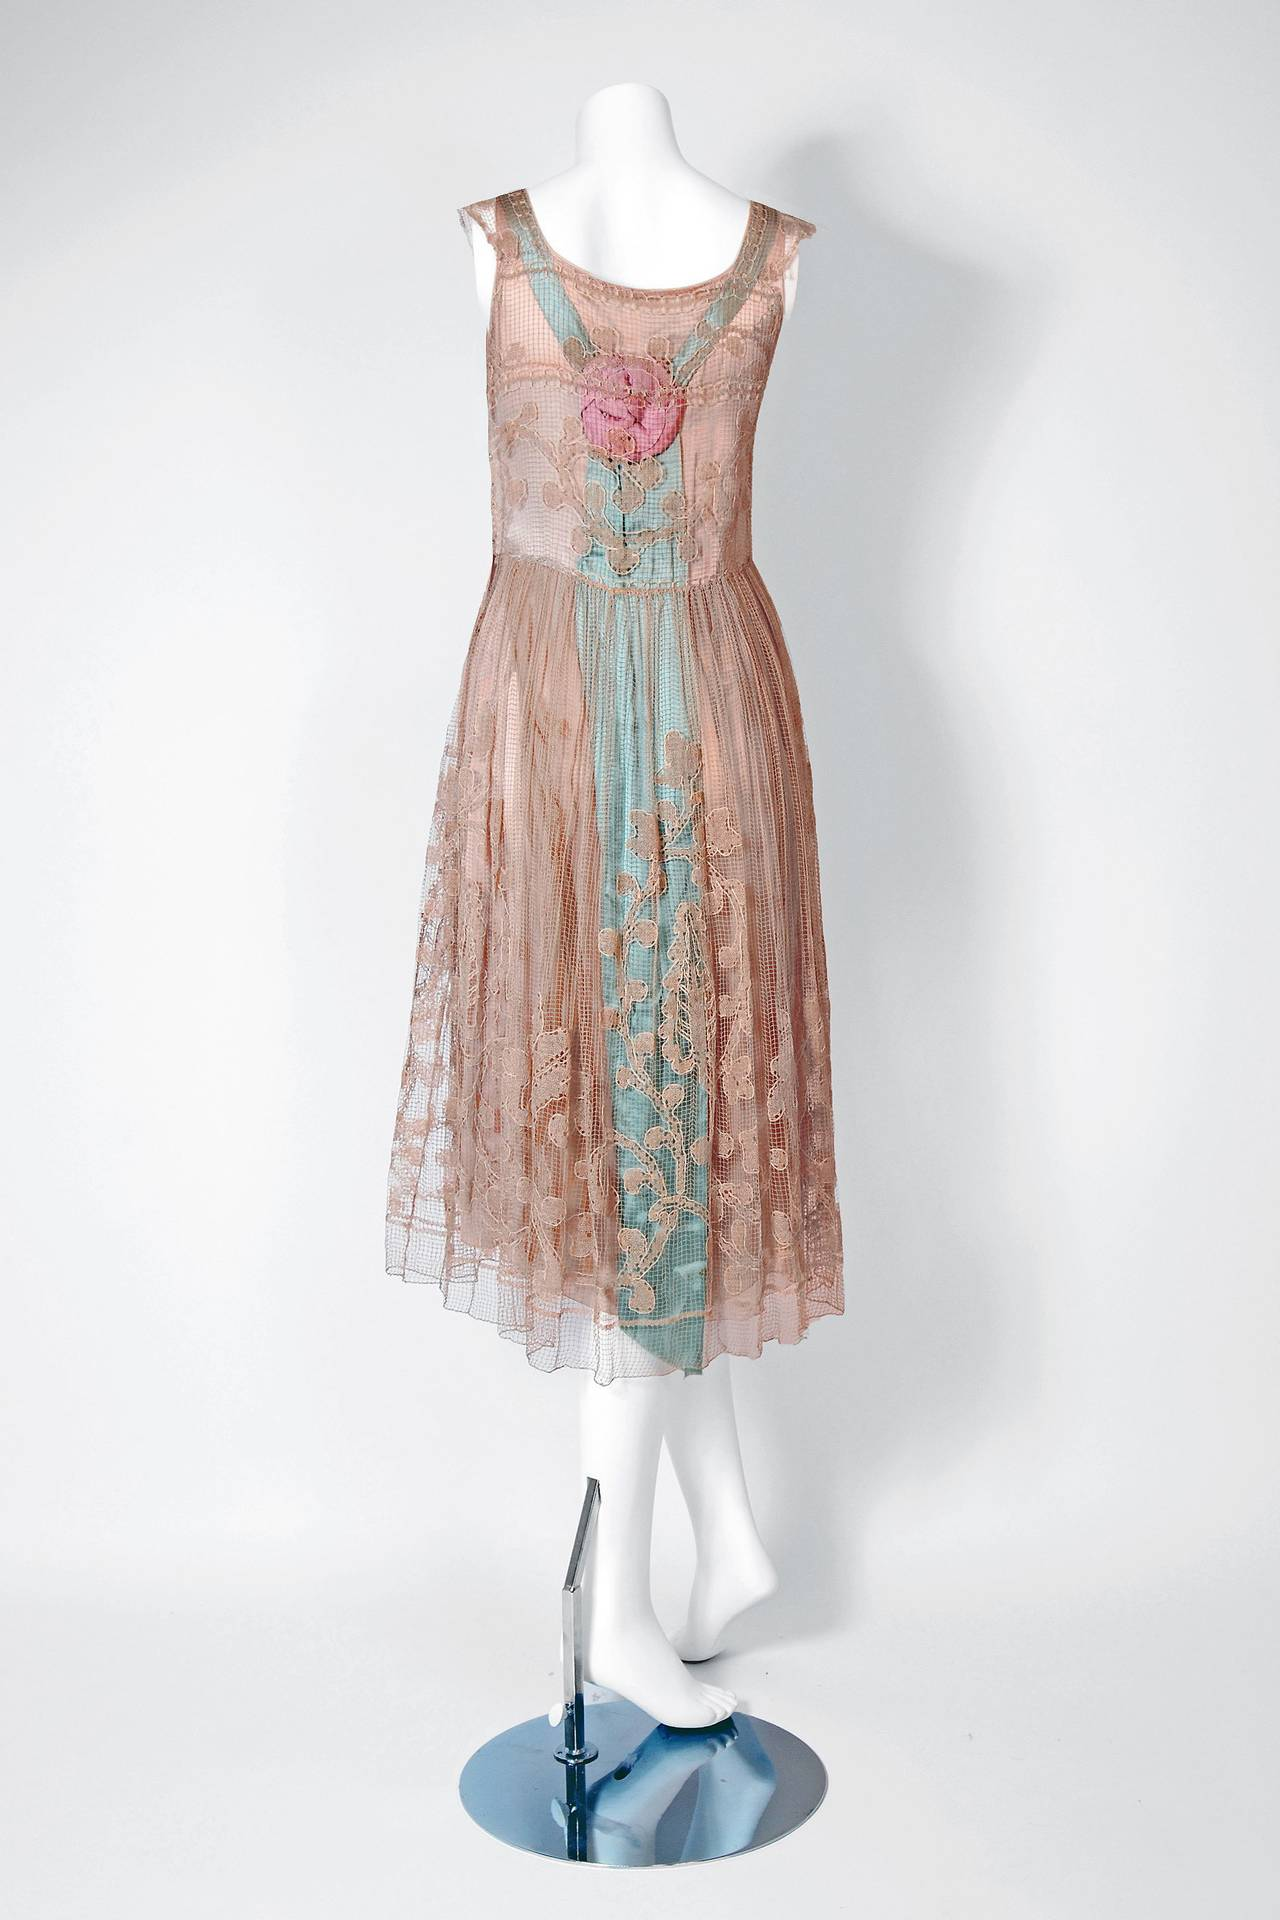 Women's 1920's Callot Soeurs Couture Attribute Silk Rosettes Filet-Lace Flapper Dress For Sale